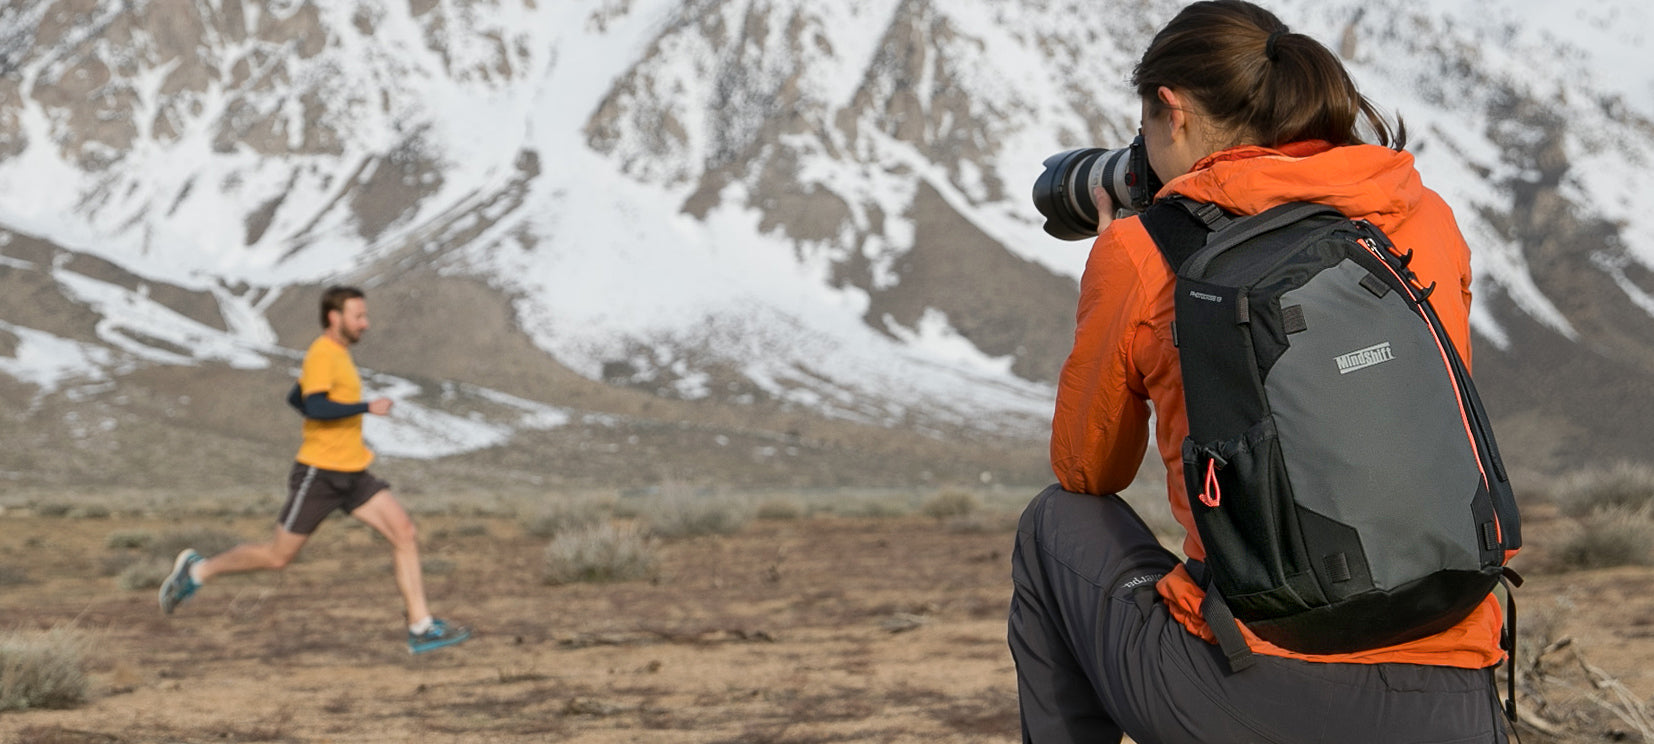 Adventure photographers need a camera bag that's as tough as they are.